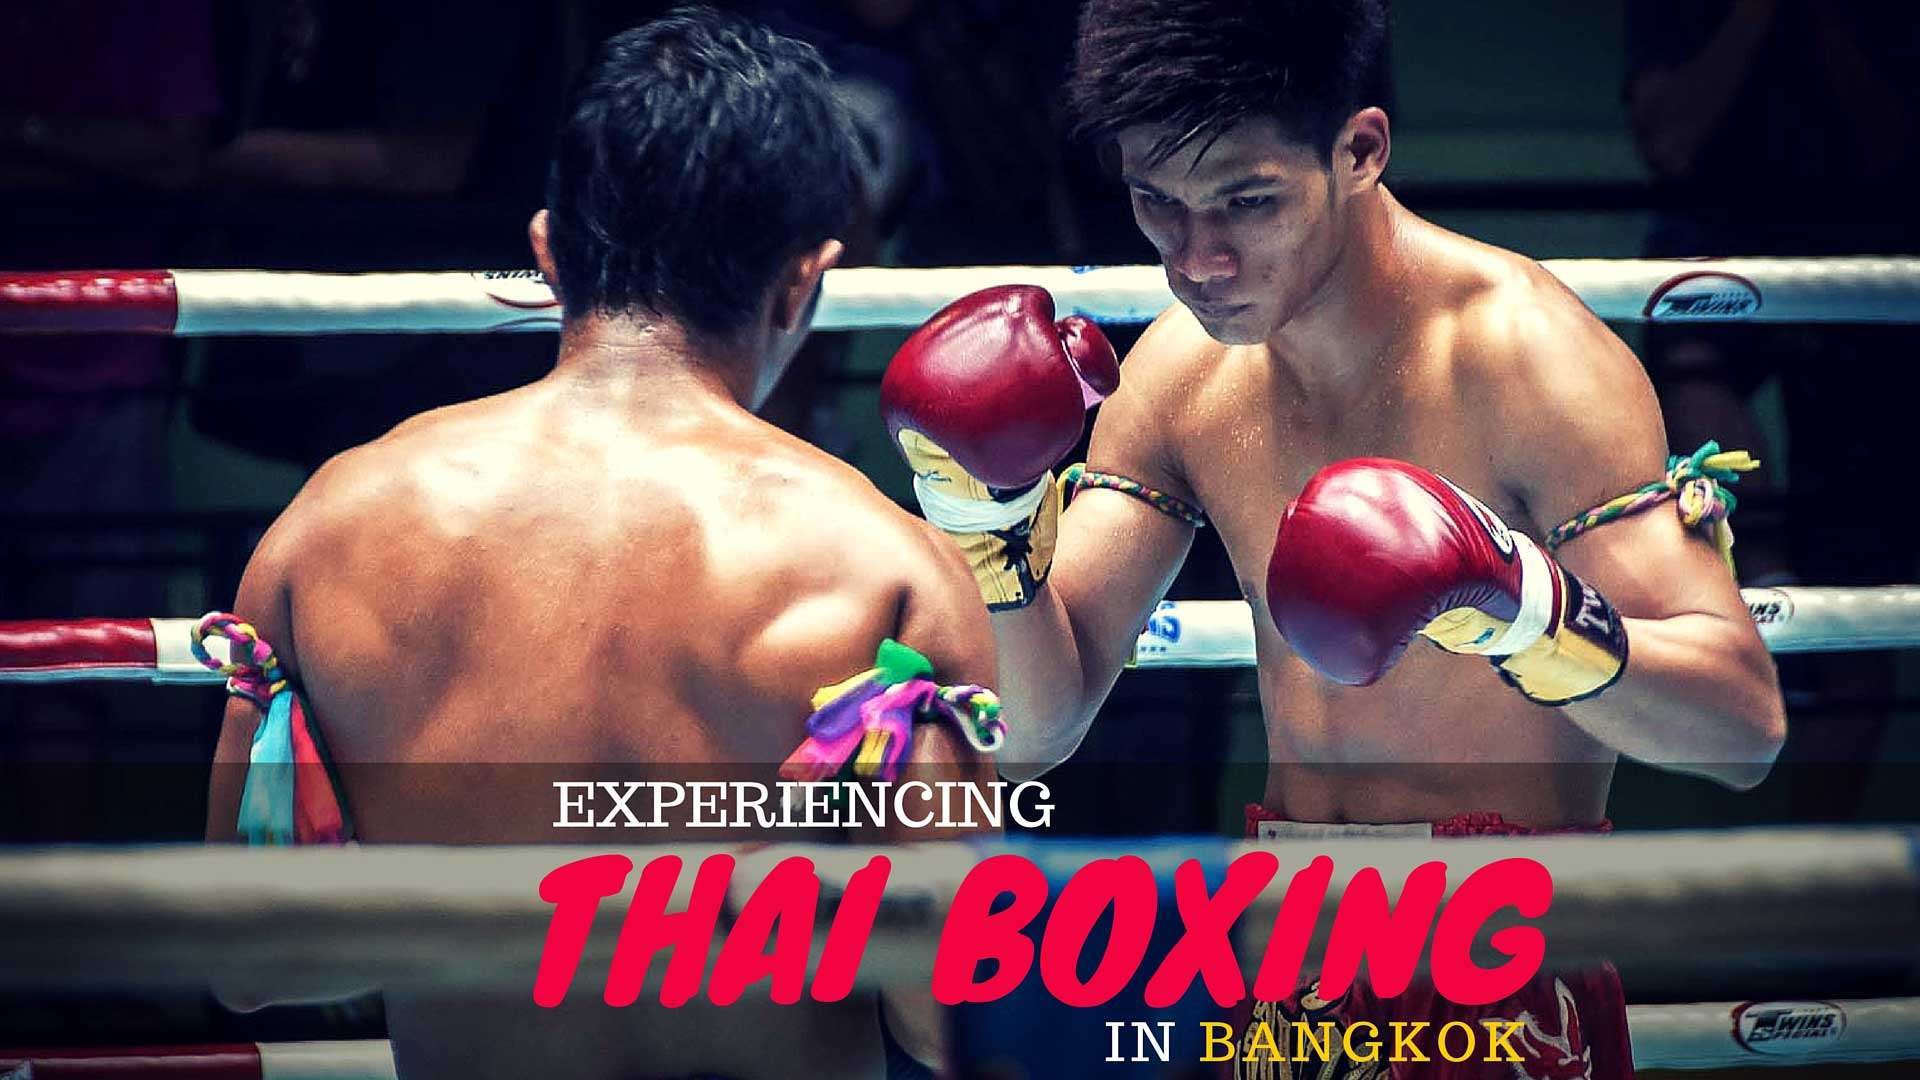 Experiencing Thai Boxing in Bangkok